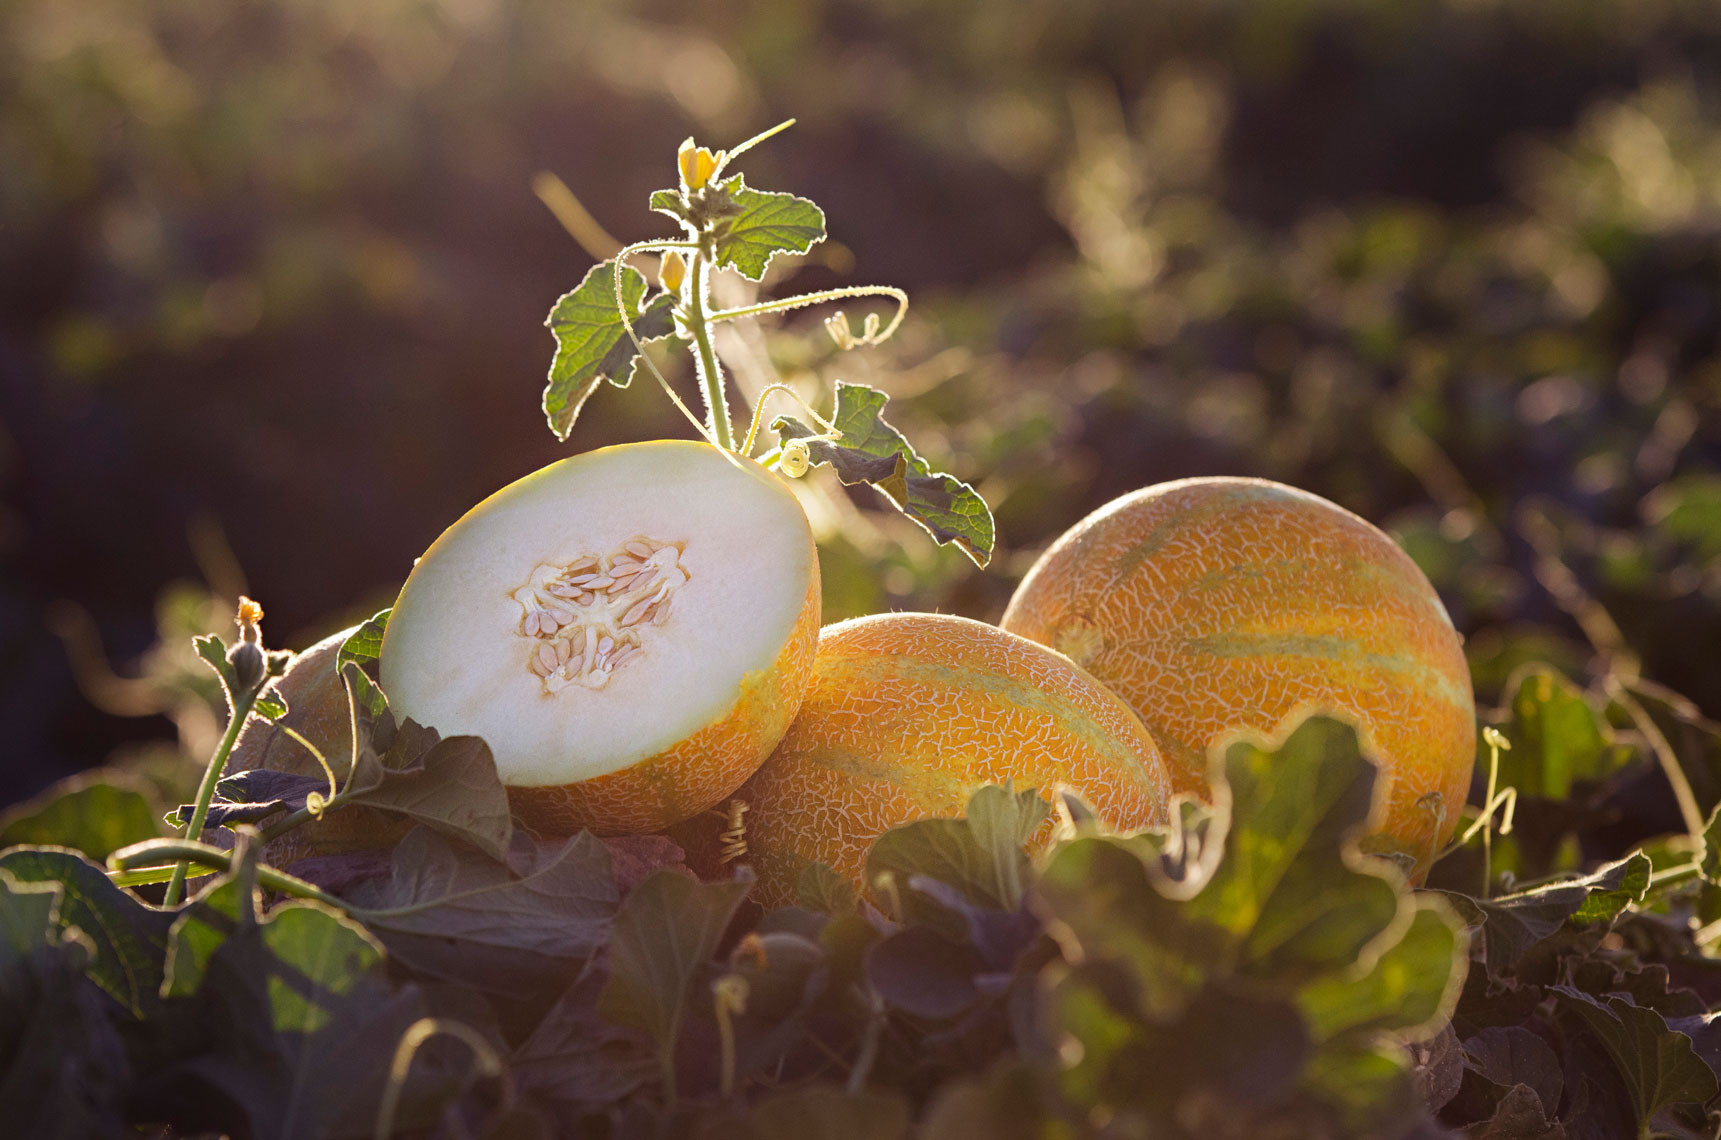 Agriculture-photography-of-Yellow-European-Melon-in-the-field-at-sunset-with-cut-melon-showing-white-flesh